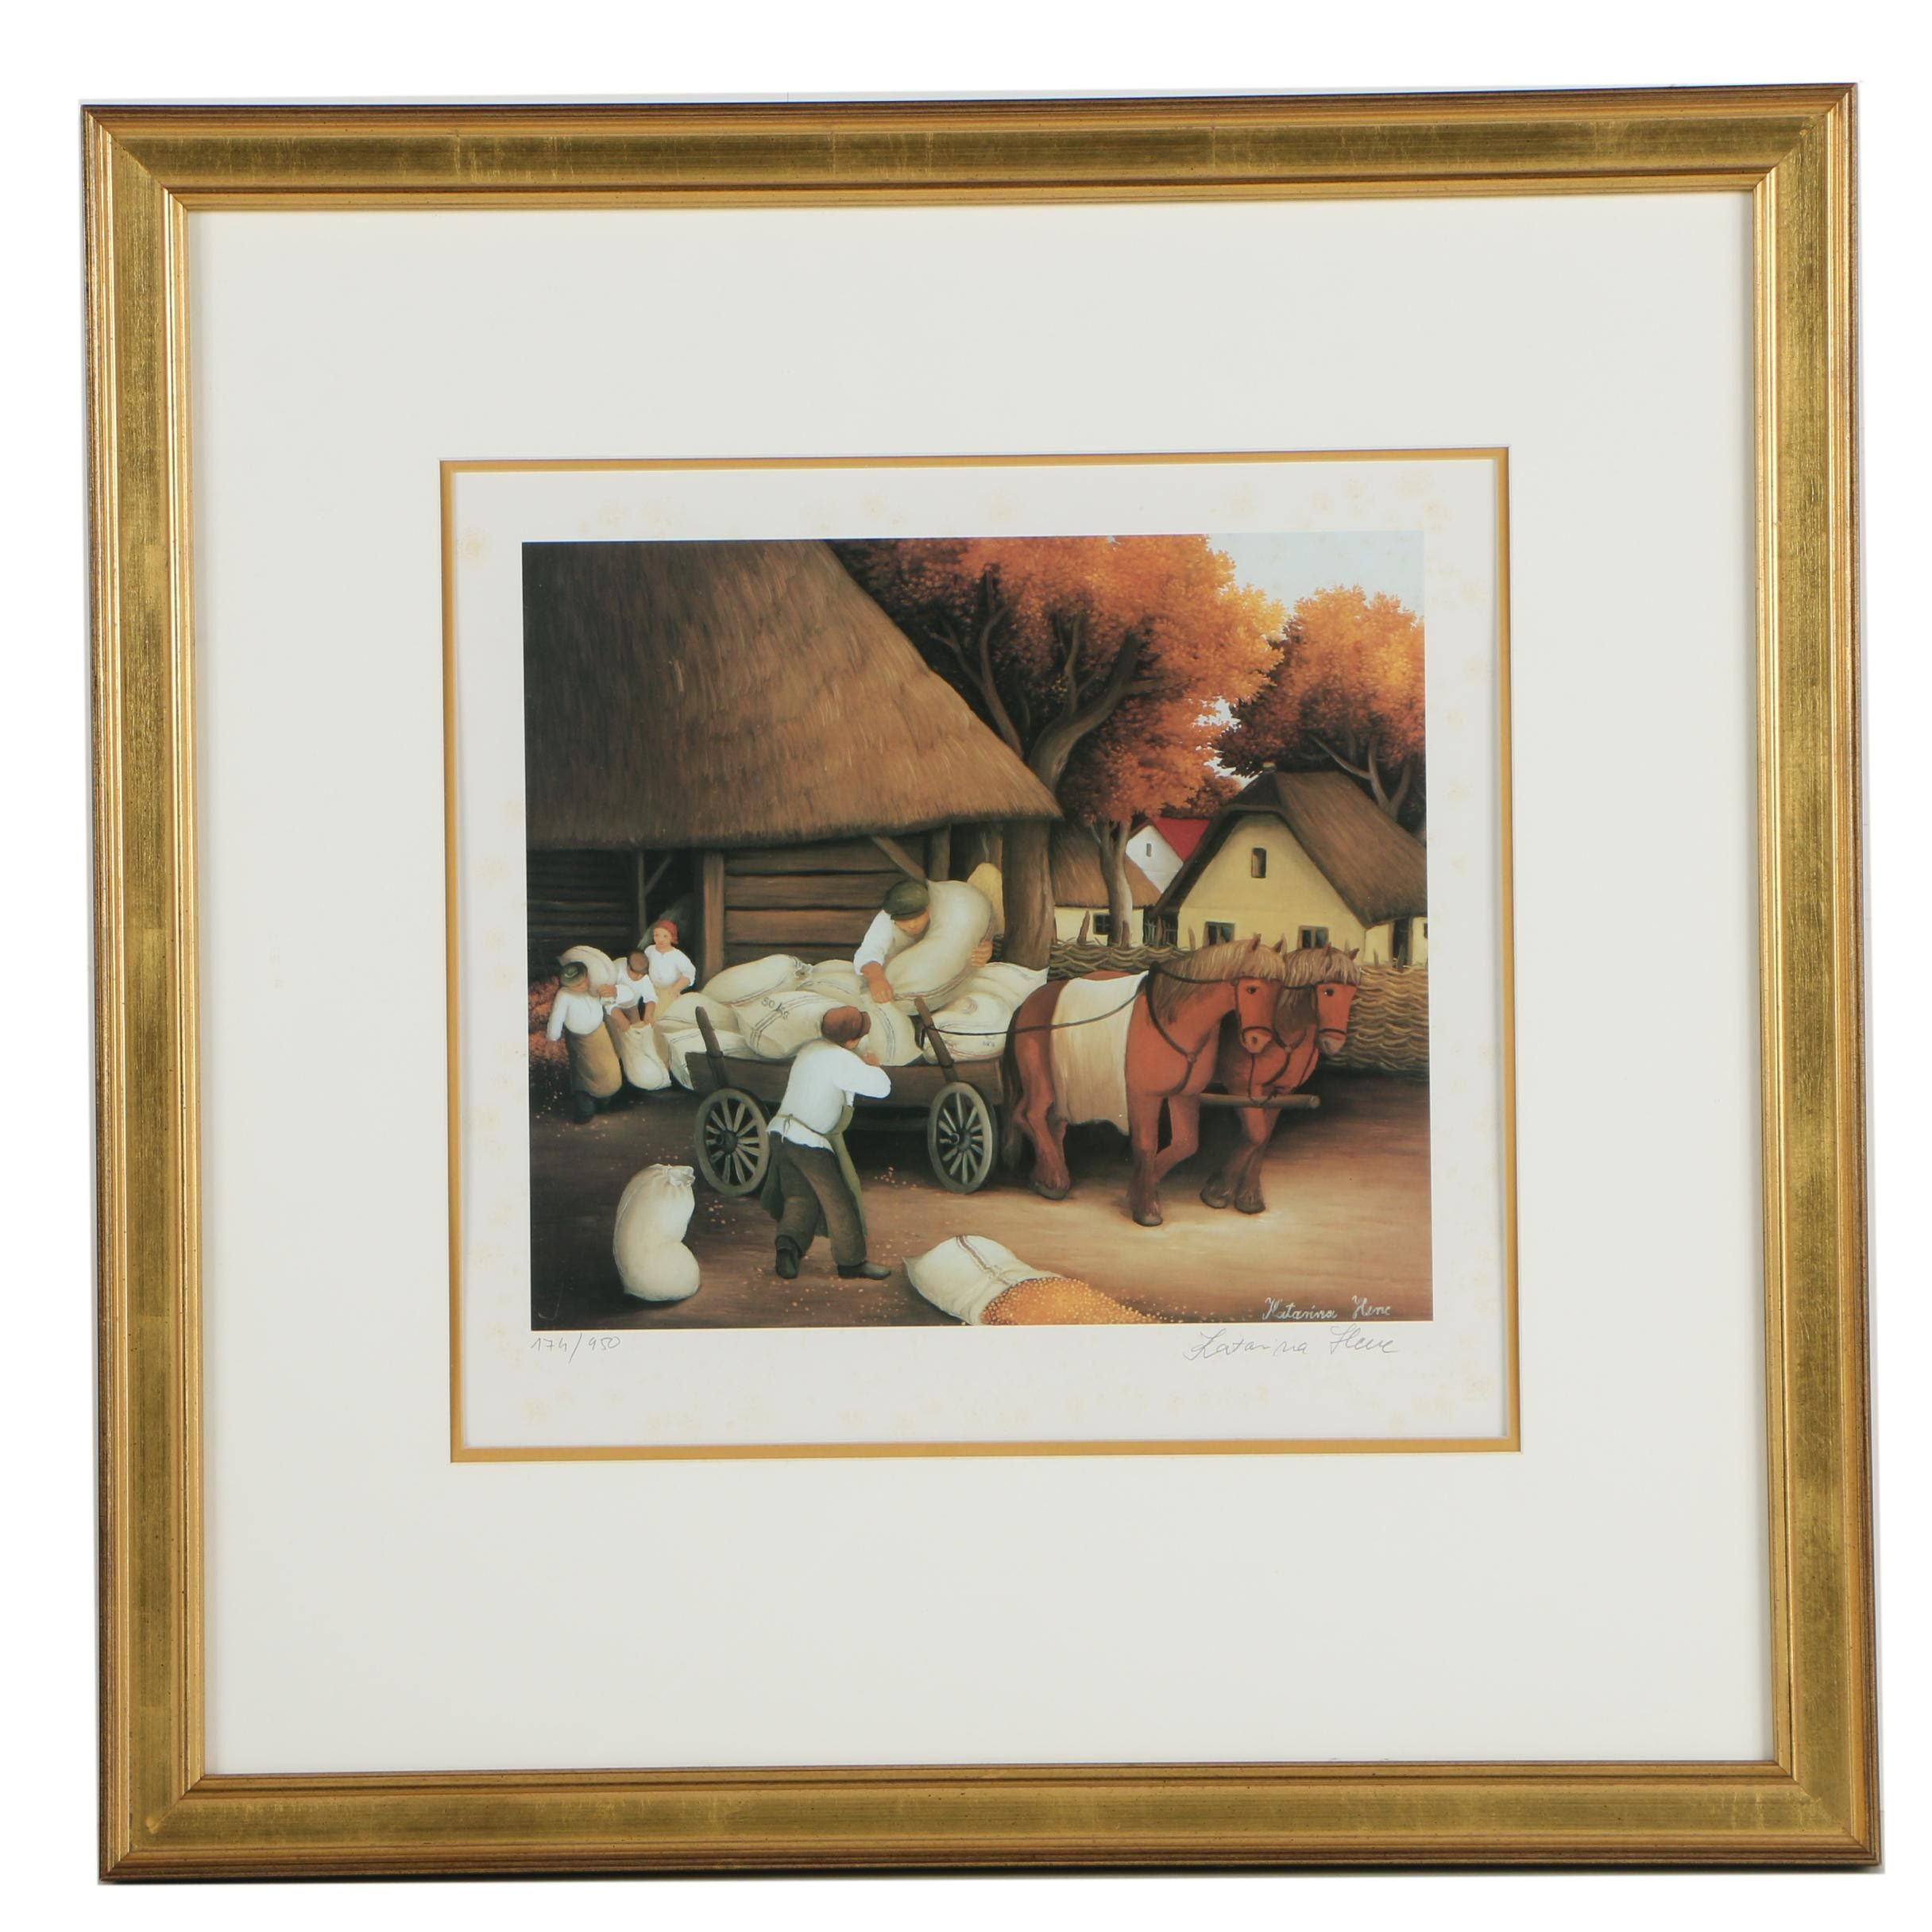 Katarina Henc Limited Edition Offset Lithograph of Village Scene